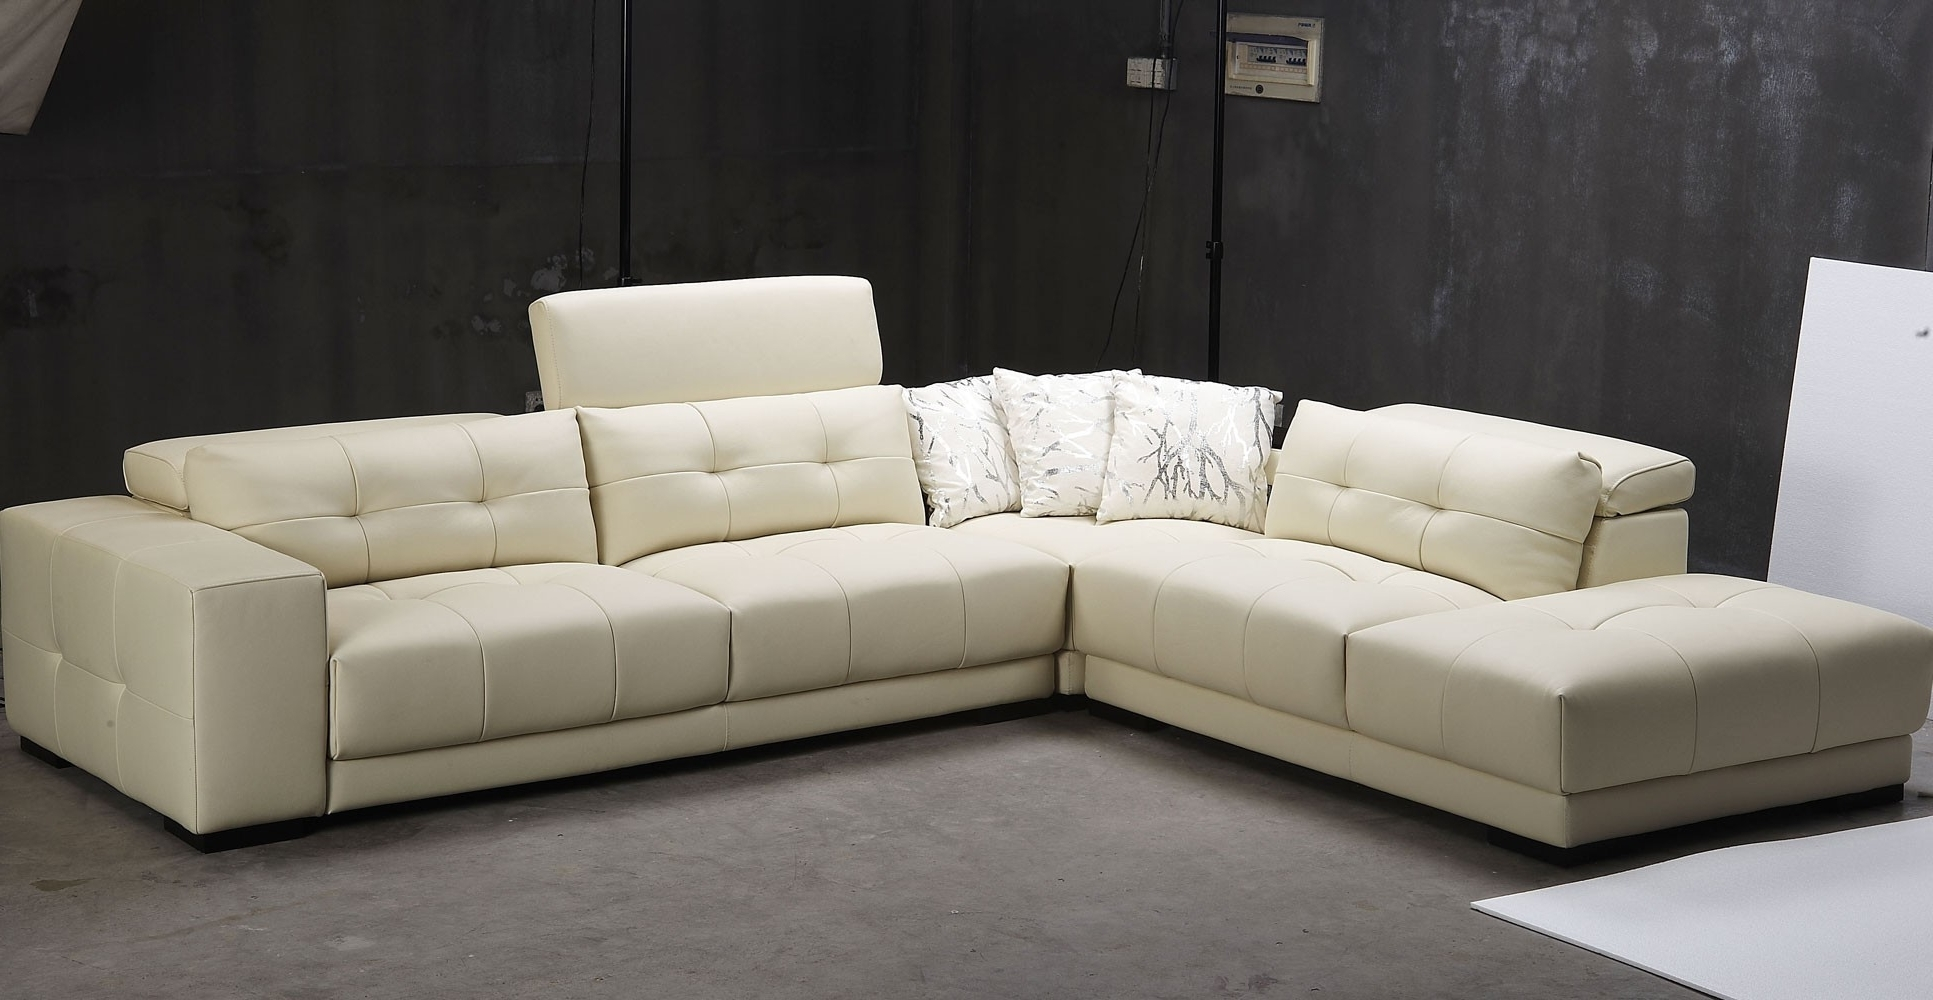 Jedd Fabric Reclining Sectional Sofas Throughout Most Recent Jedd Fabric Reclining Sectional Sofa Reviews Sofas Contemporary (Gallery 3 of 20)